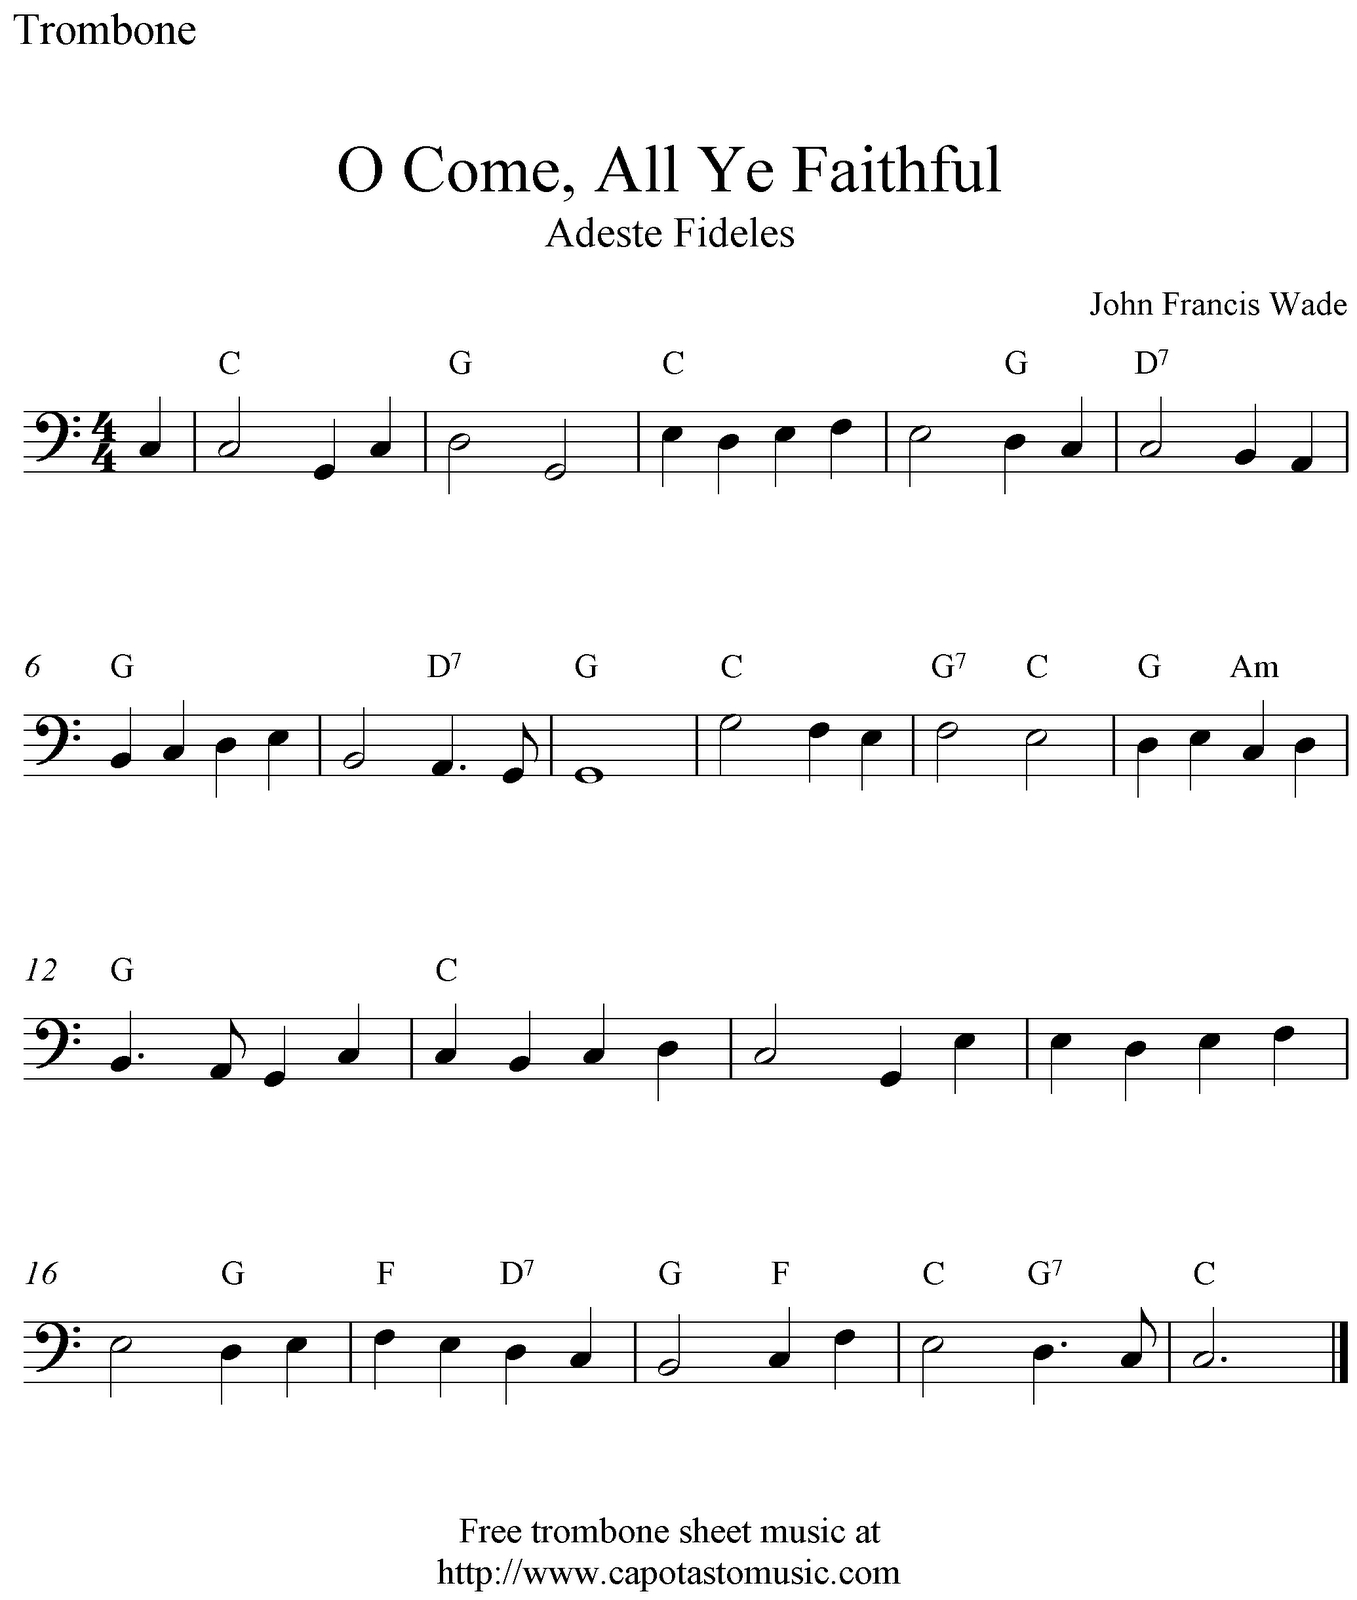 O Come, All Ye Faithful, Simple Music For Trombone. | Music & Things - Sheet Music For Trombone Free Printable